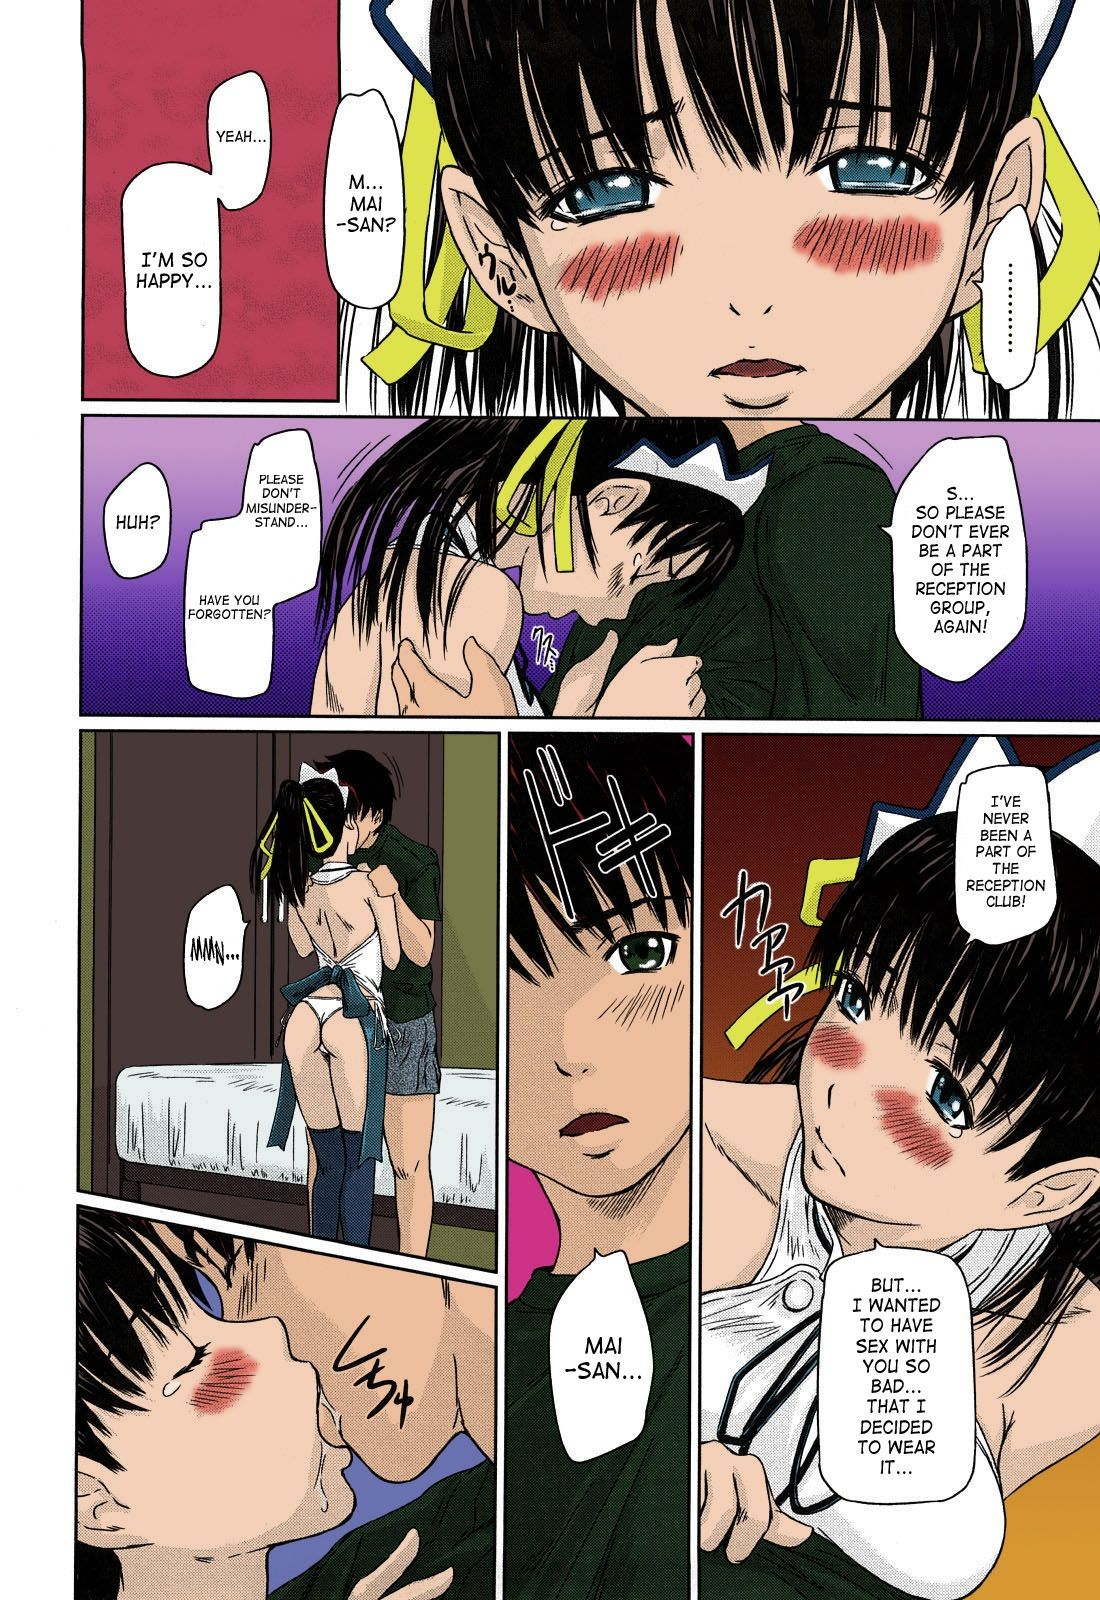 Kisaragi Gunma Mai Favorite Ch. 1-5 SaHa Decensored Colorized - part 6